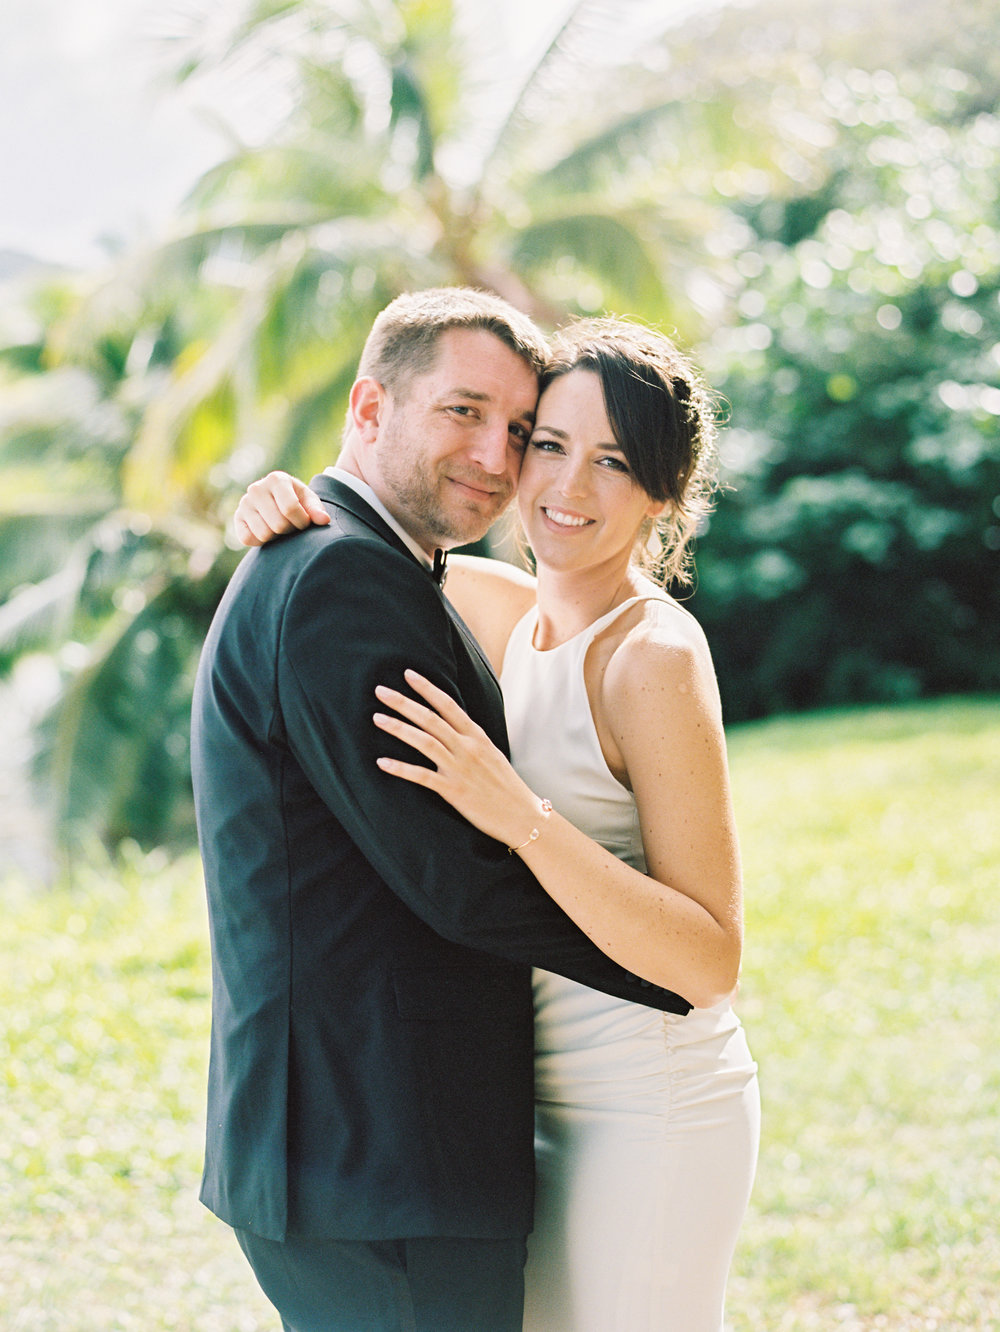 Ben & Laura - Kaneohe, Hawaii